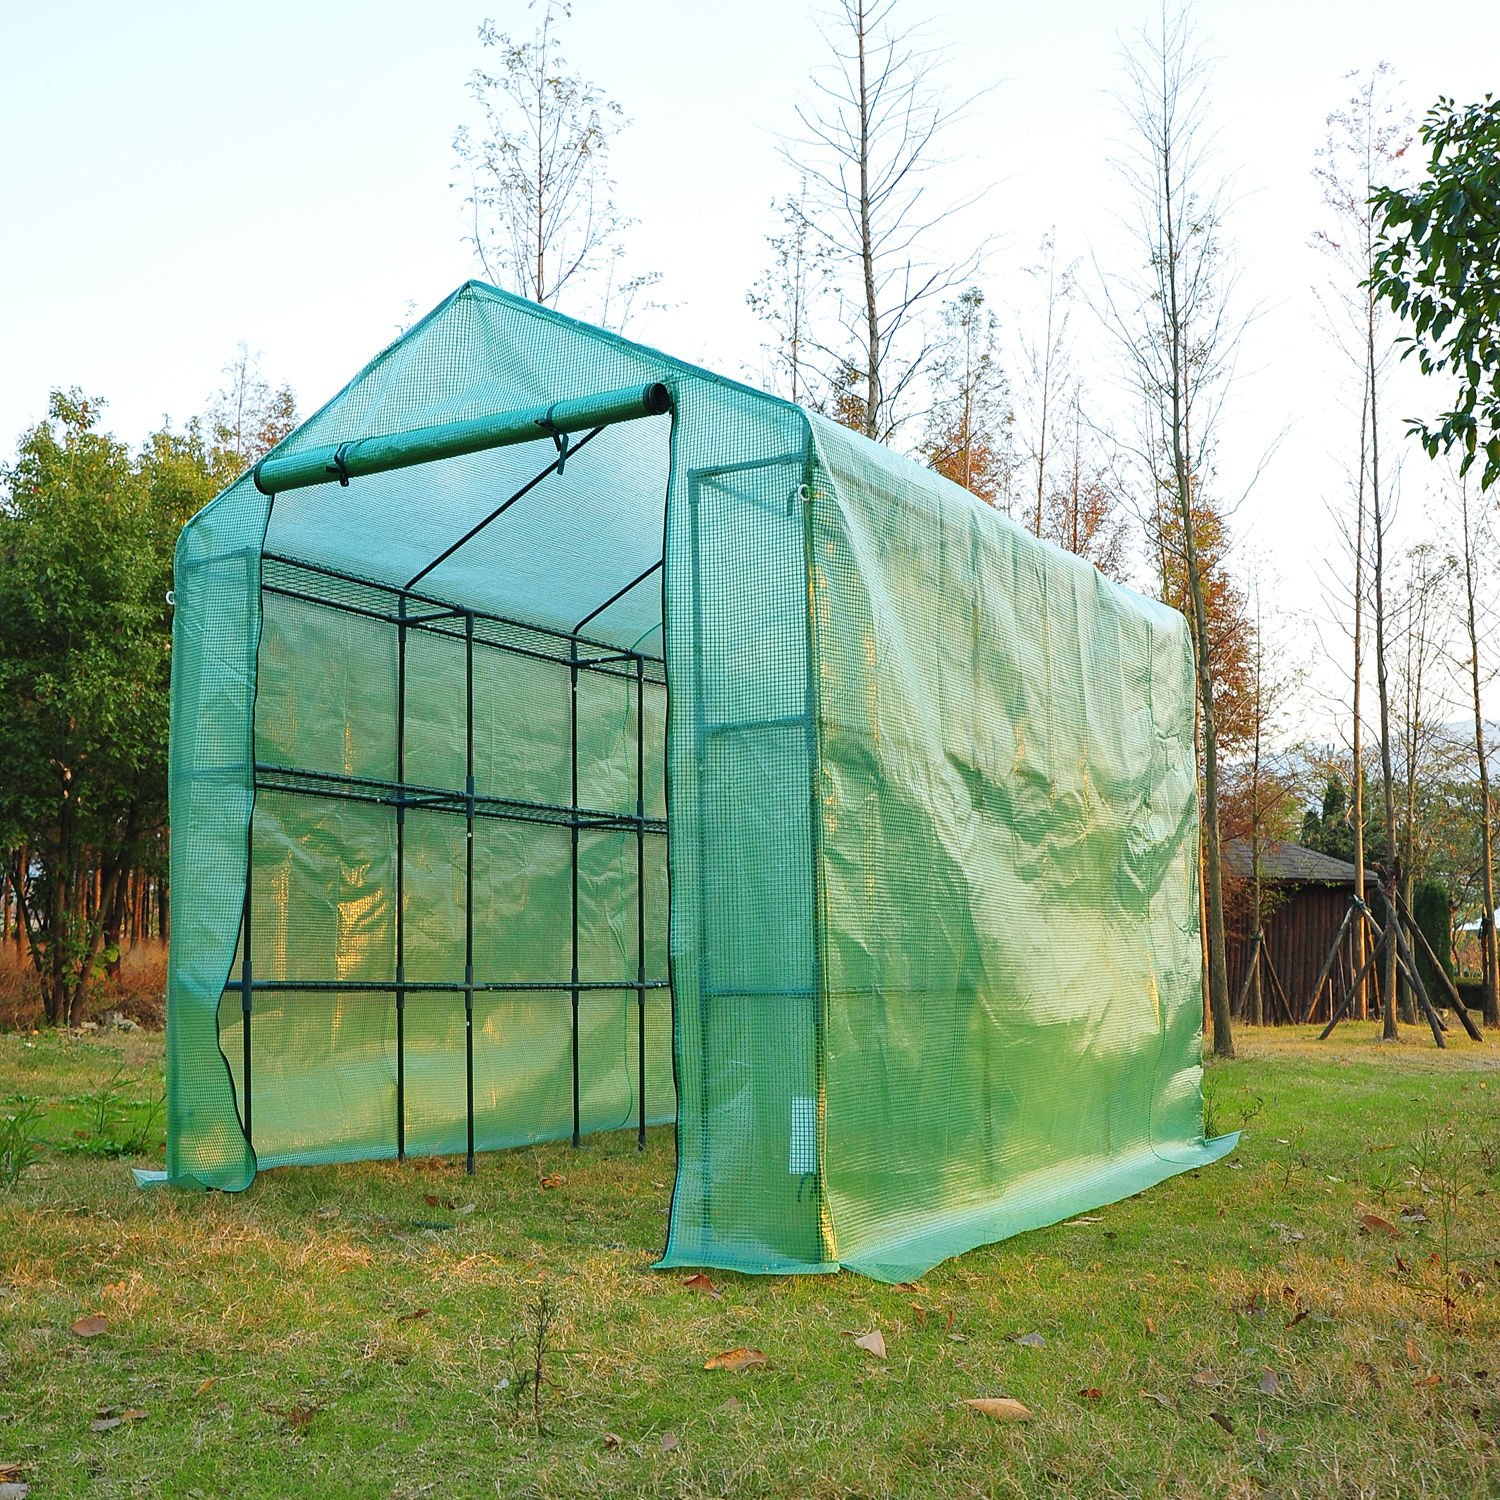 Outsunny 8' x 6' x 7' Outdoor Portable Walk-in Greenhouse by Outsunny (Image #2)